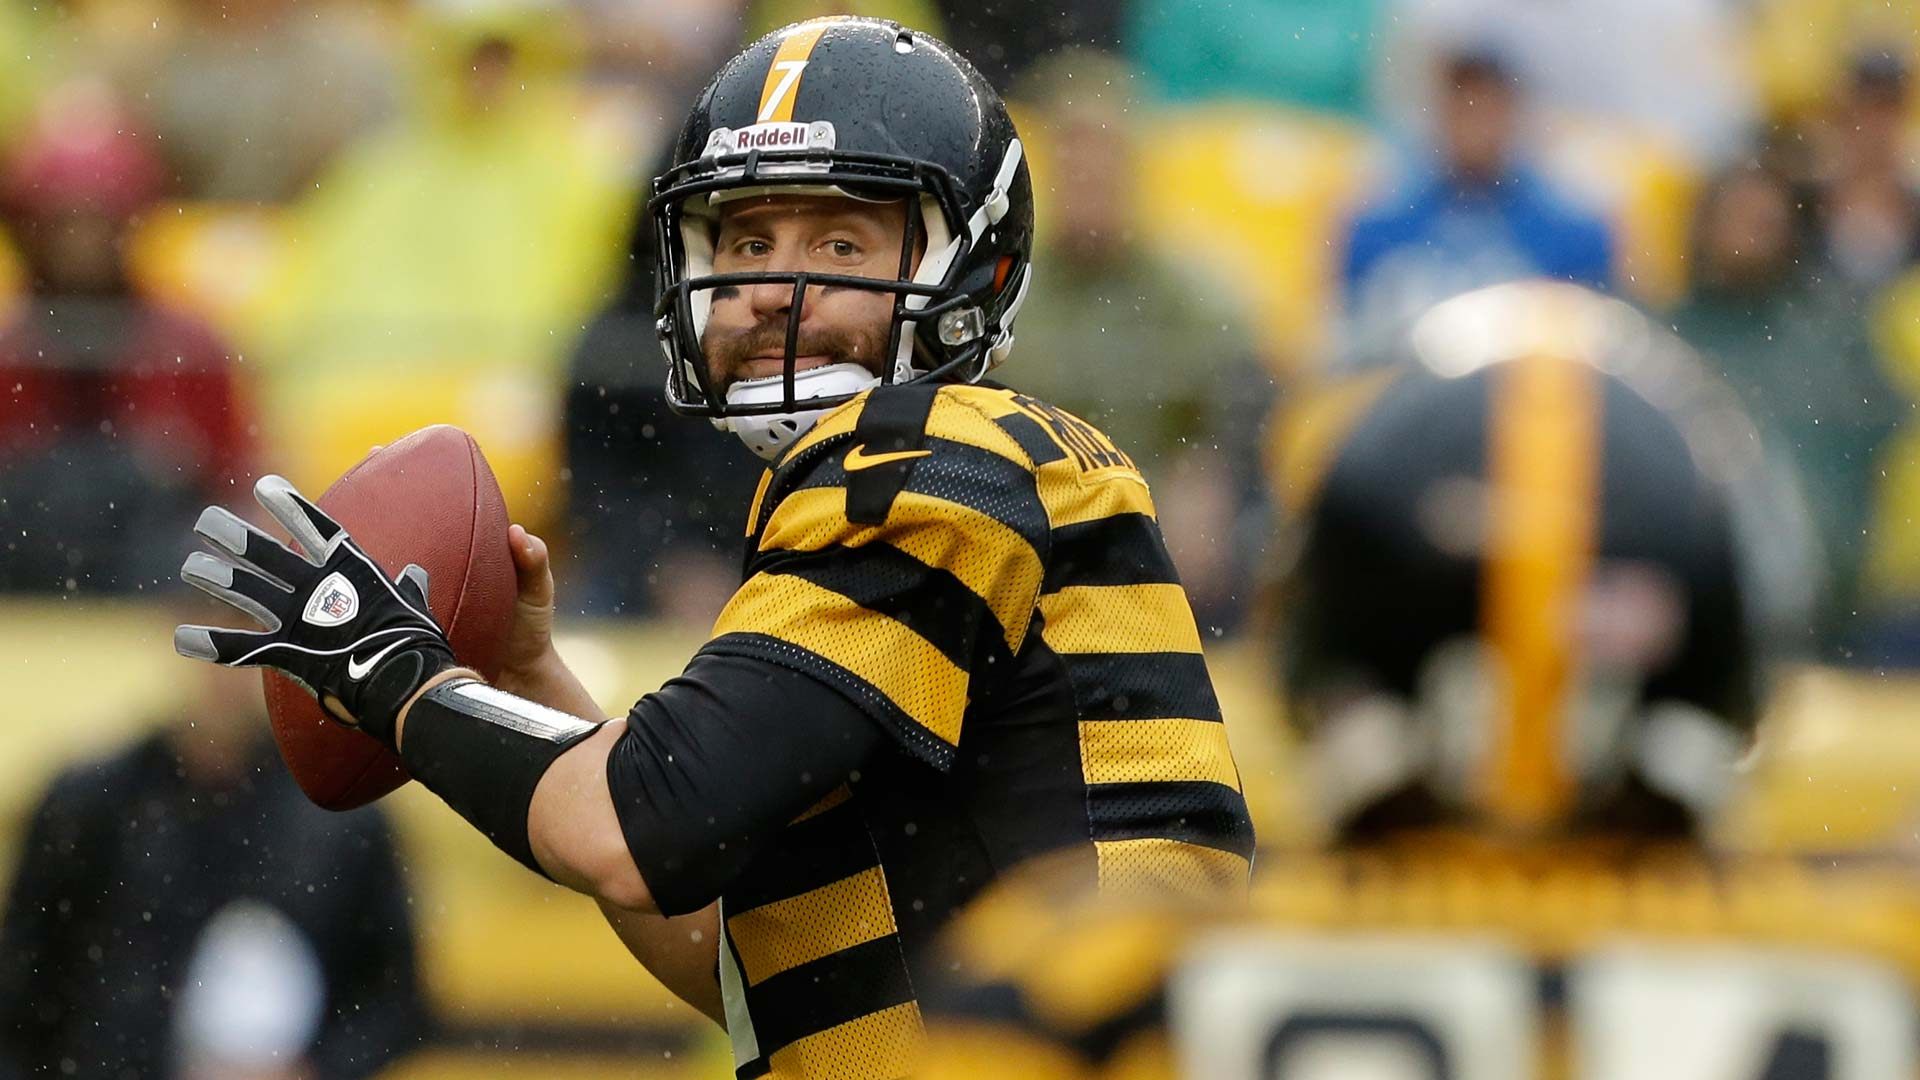 Week 11 fantasy football studs, duds: Roethlisberger strikes again